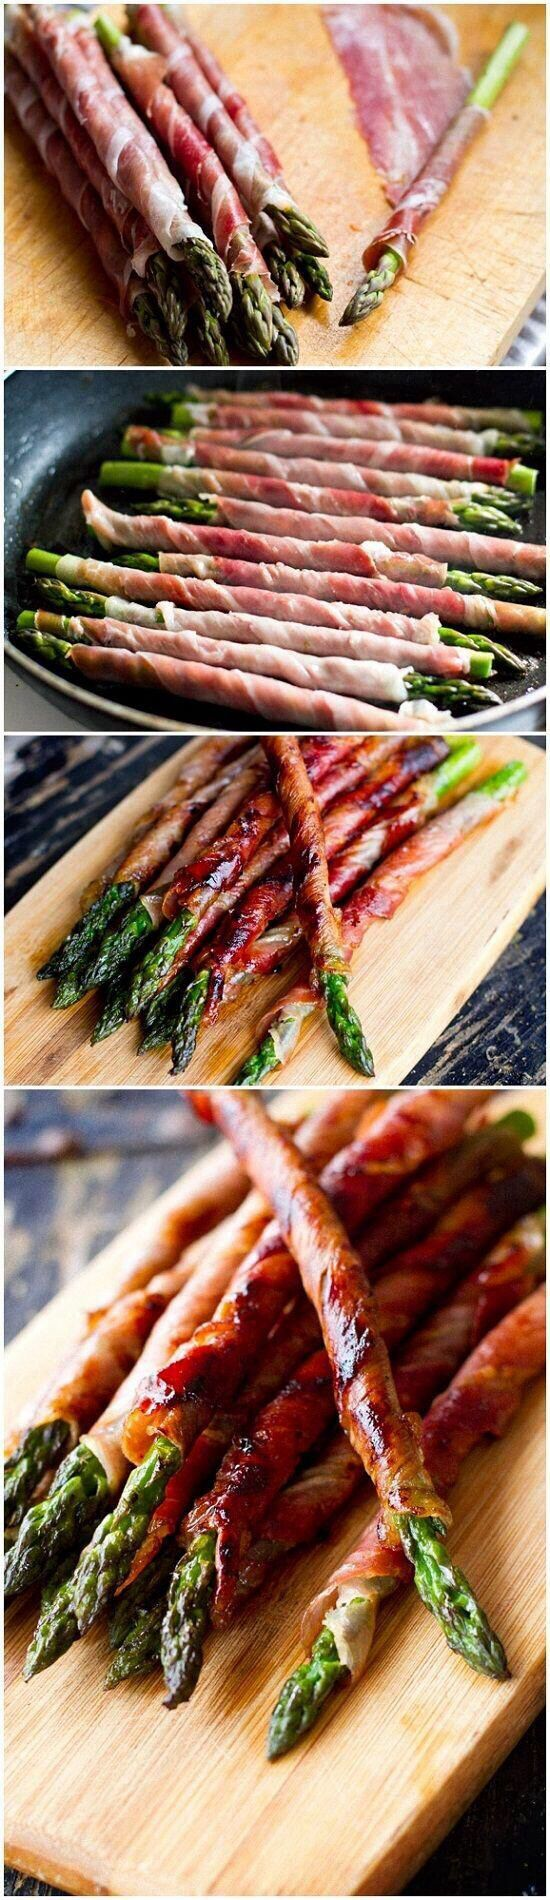 Quick and easy! Just wrap a slice of bacon around each asparagus and put in the oven for 15 minutes.